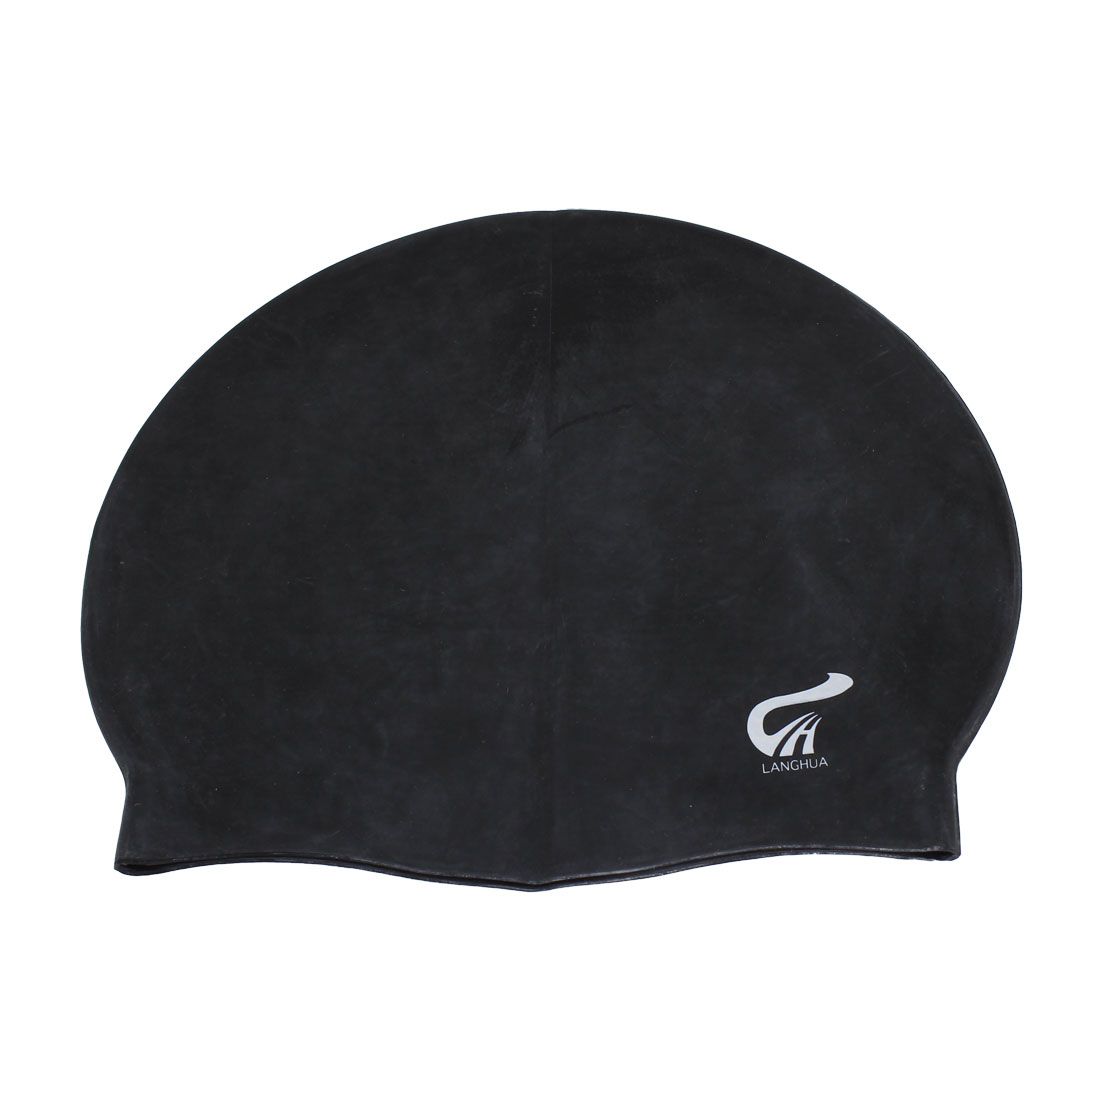 Women Men Soft Silicone Dome Shaped Elastic Swimming Hair Cover Protector Swim Cap Hat Black